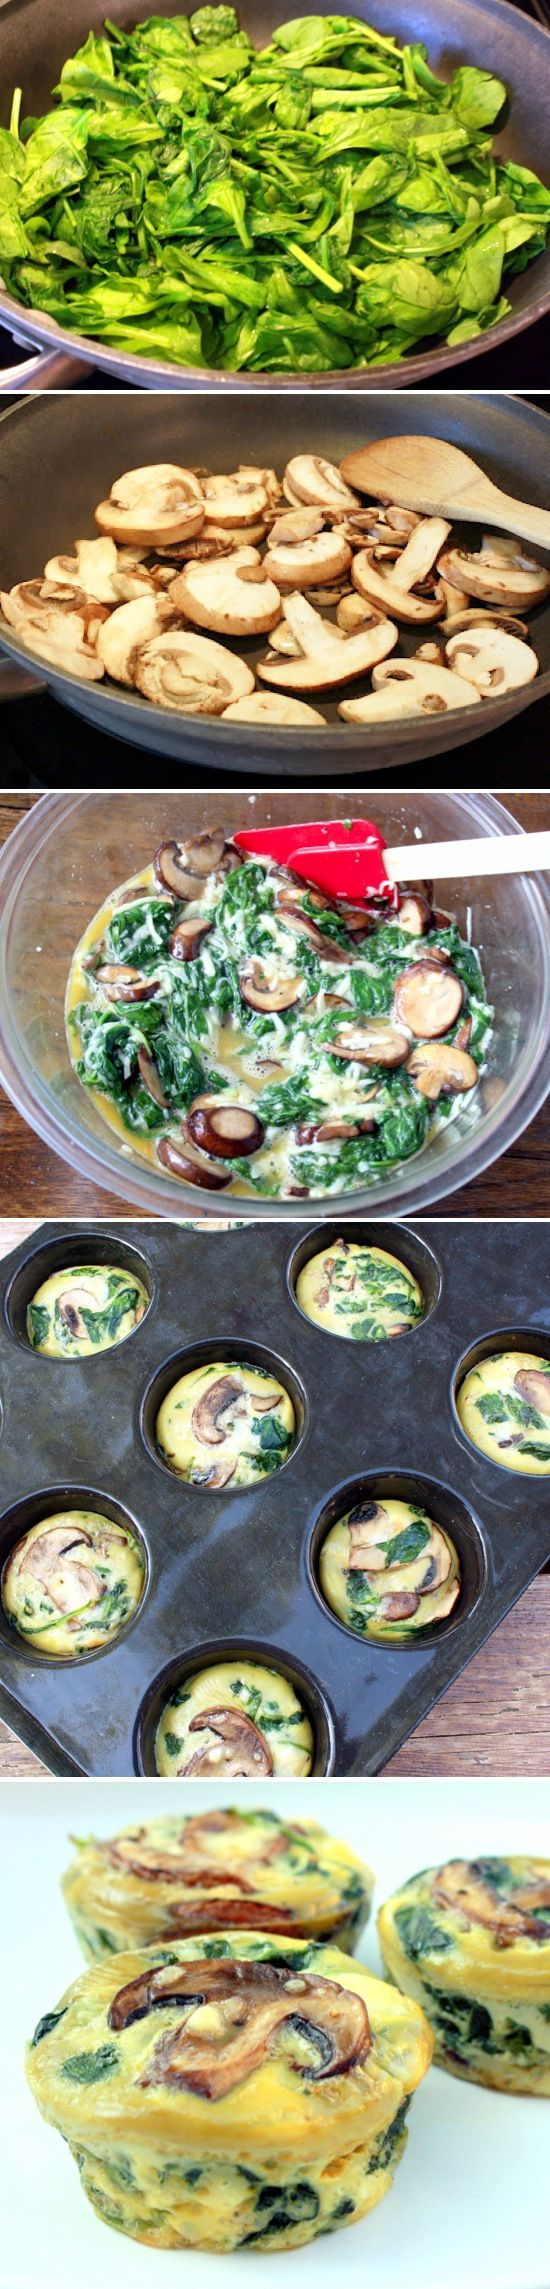 Spinach Egg Cups - I'd add rendered bacon.